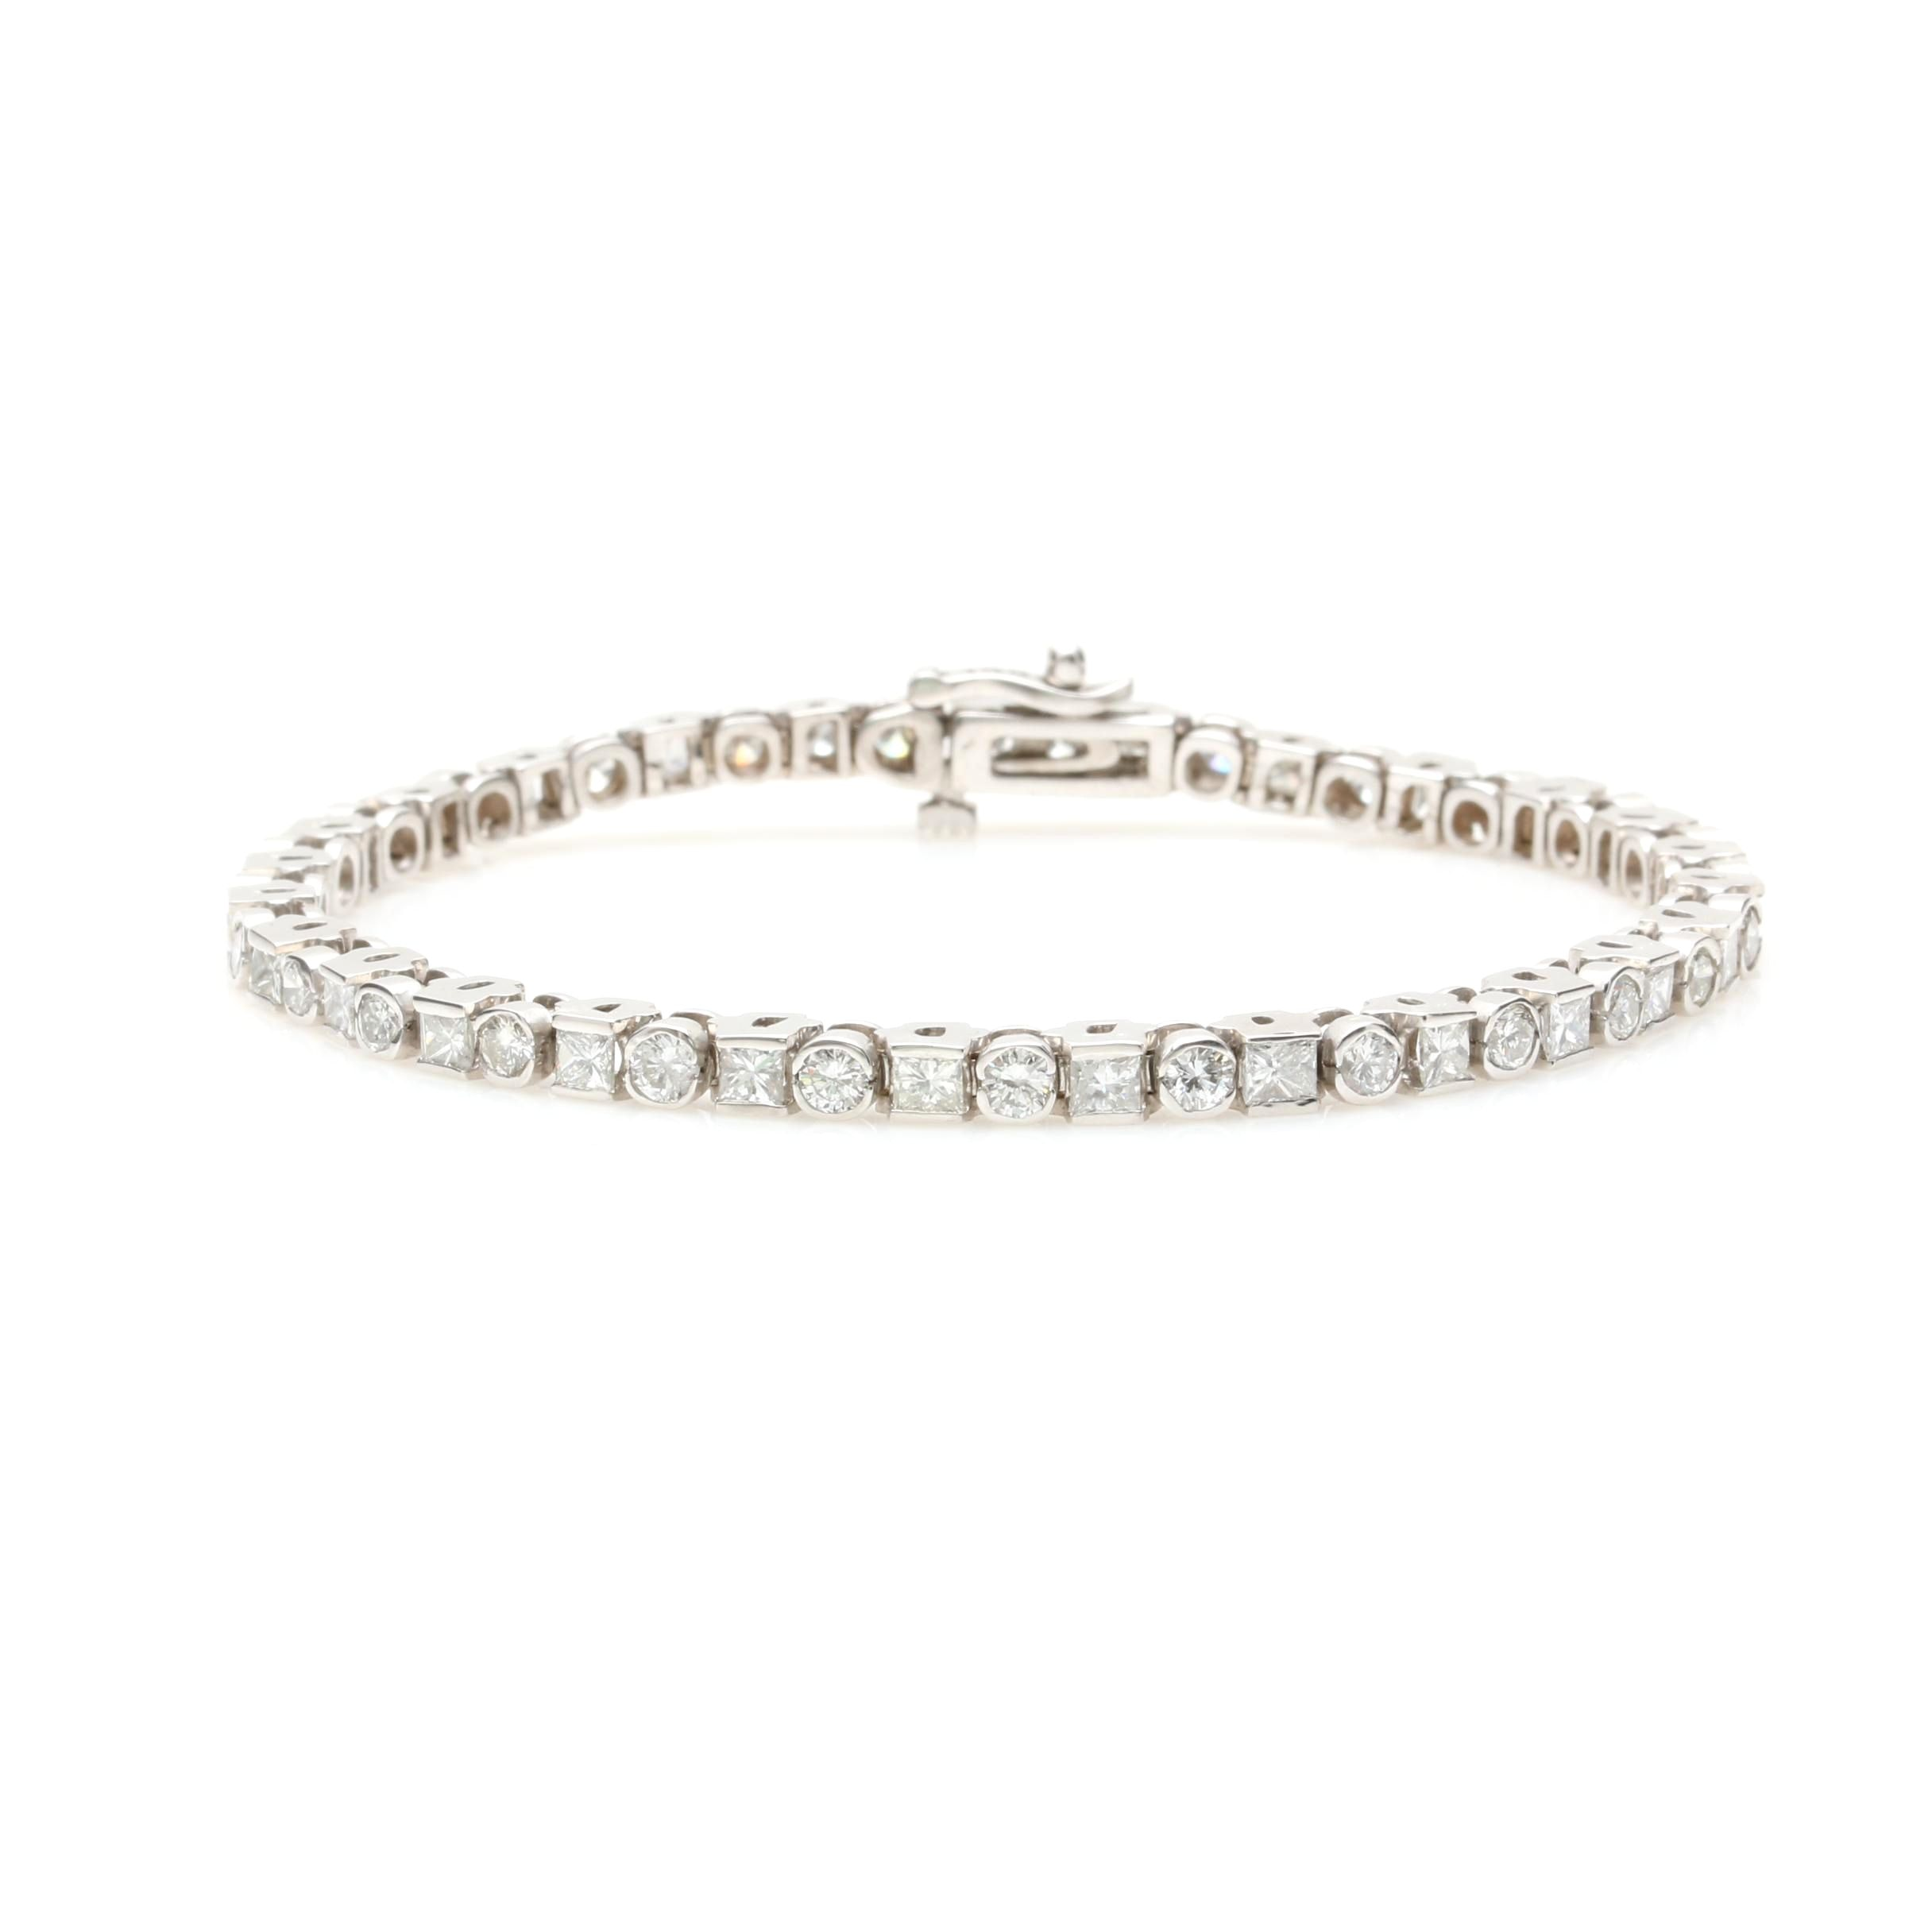 14K White Gold 5.08 CTW Diamond Bracelet